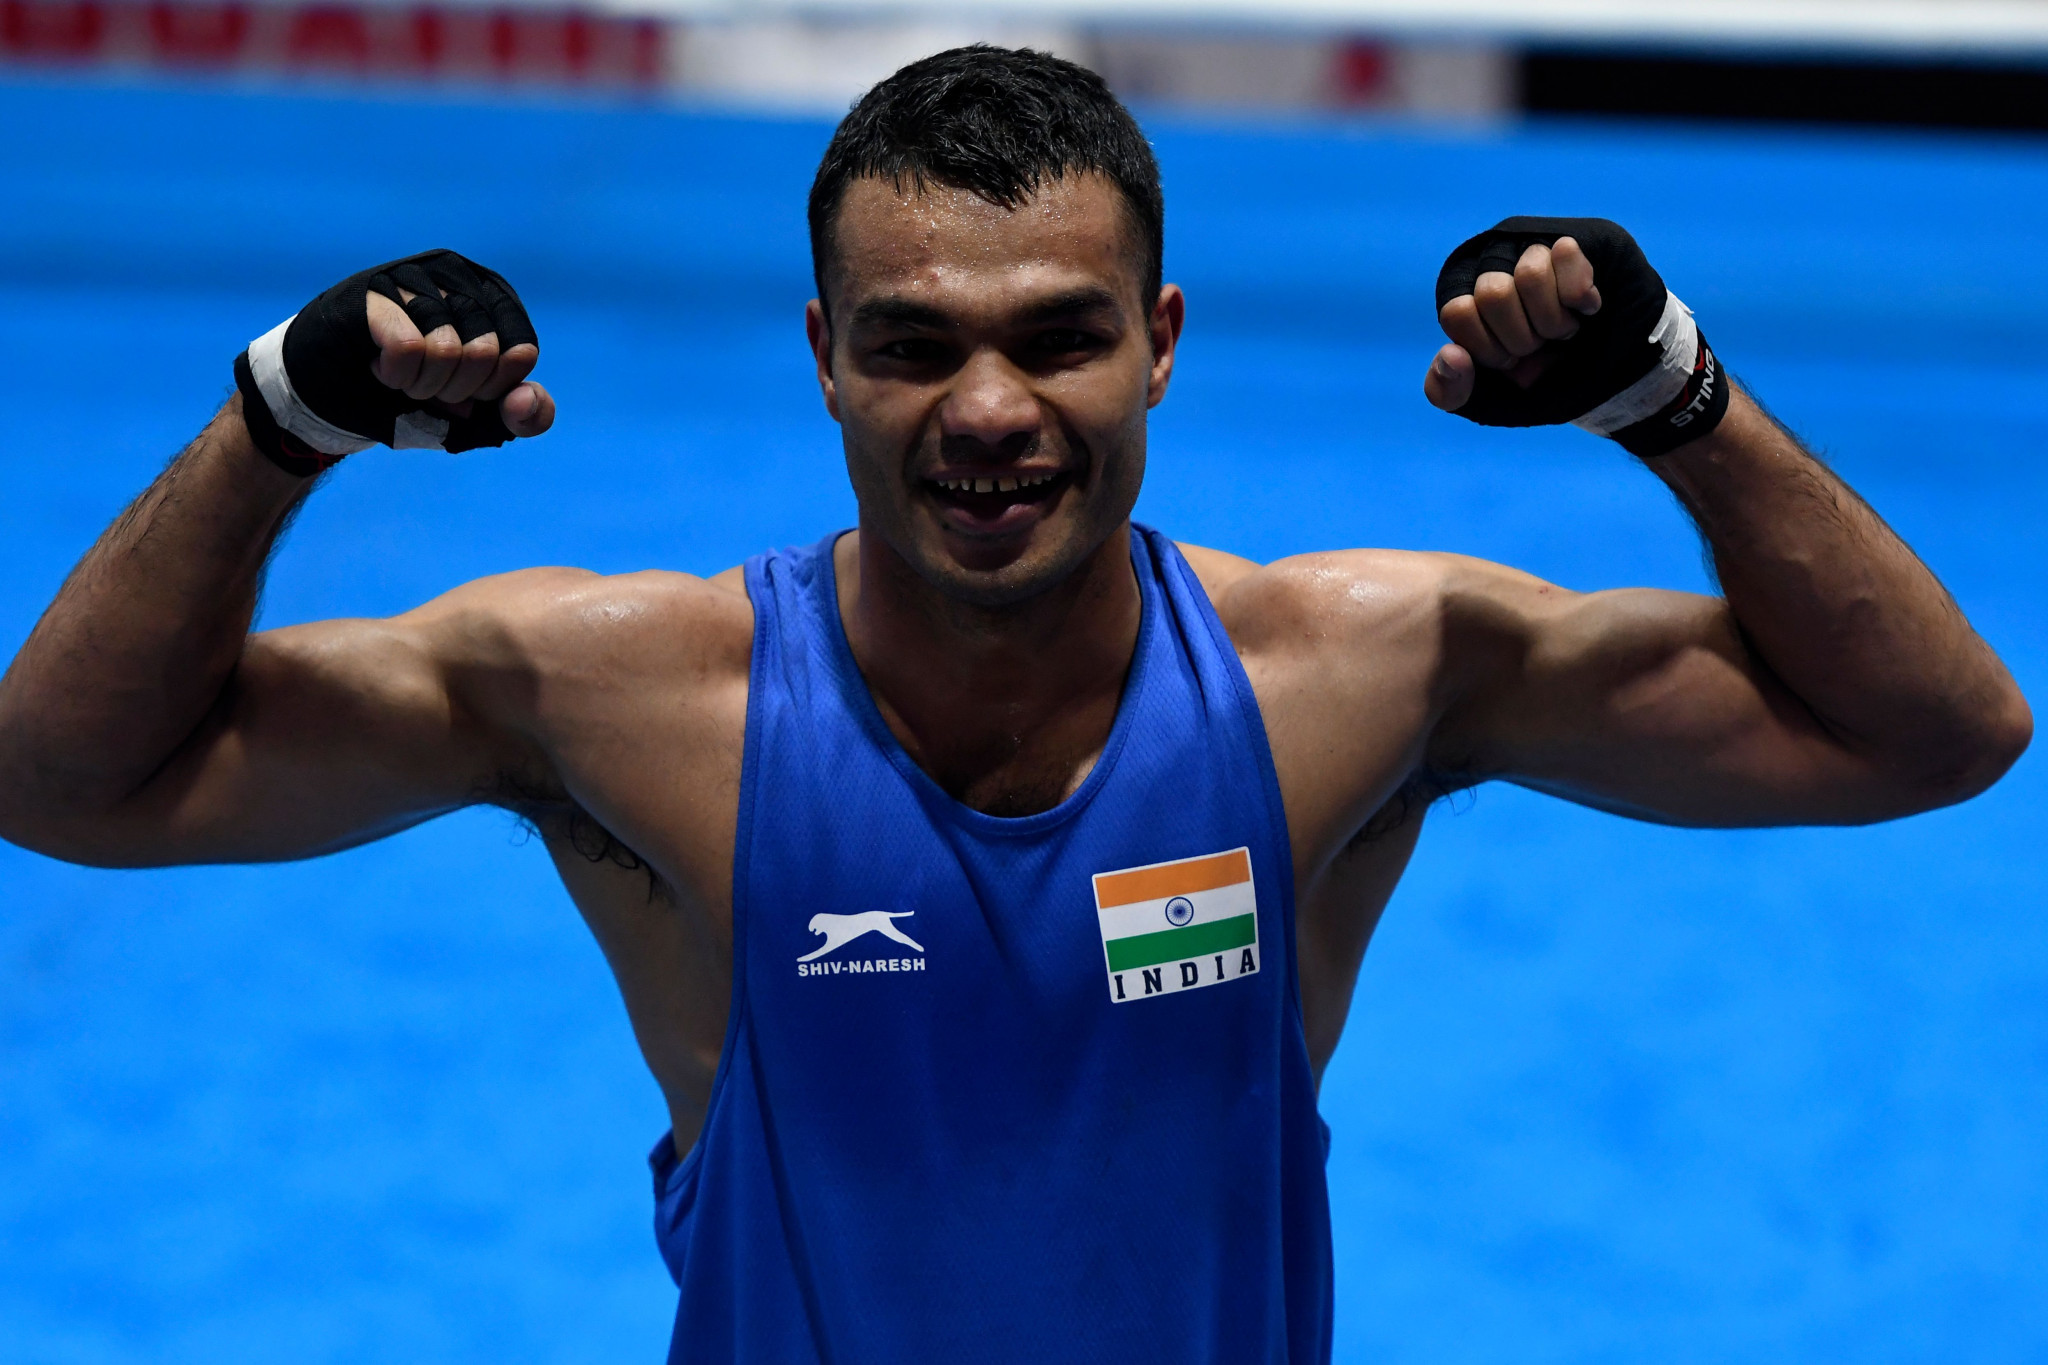 Vikas Krishan was among those due at the training camp ©Getty Images